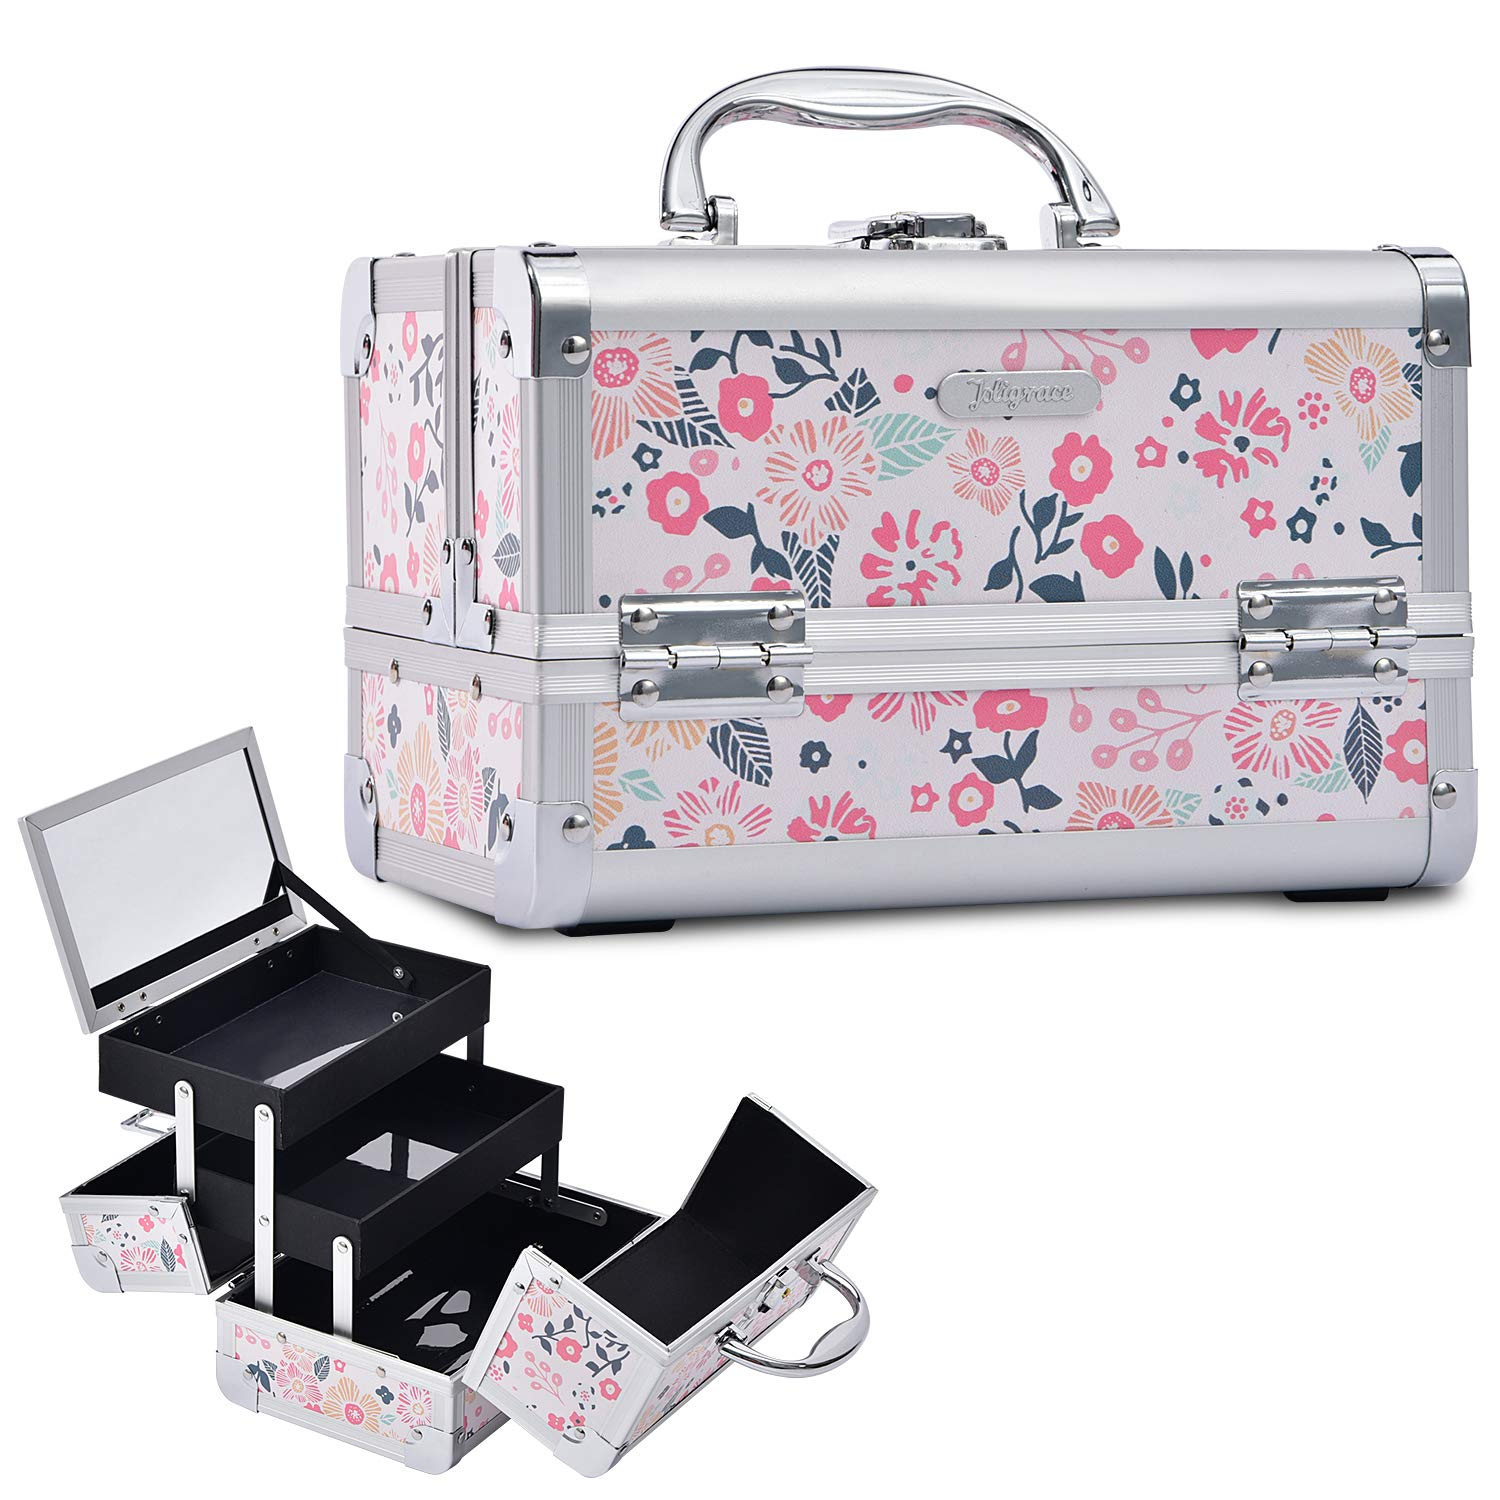 Joligrace Makeup Box Cosmetic Train Case Jewelry Organizer Lockable with Keys and Mirror 2-Tier Tray Portable Carrying Travel Storage Box for Girl - White Floral